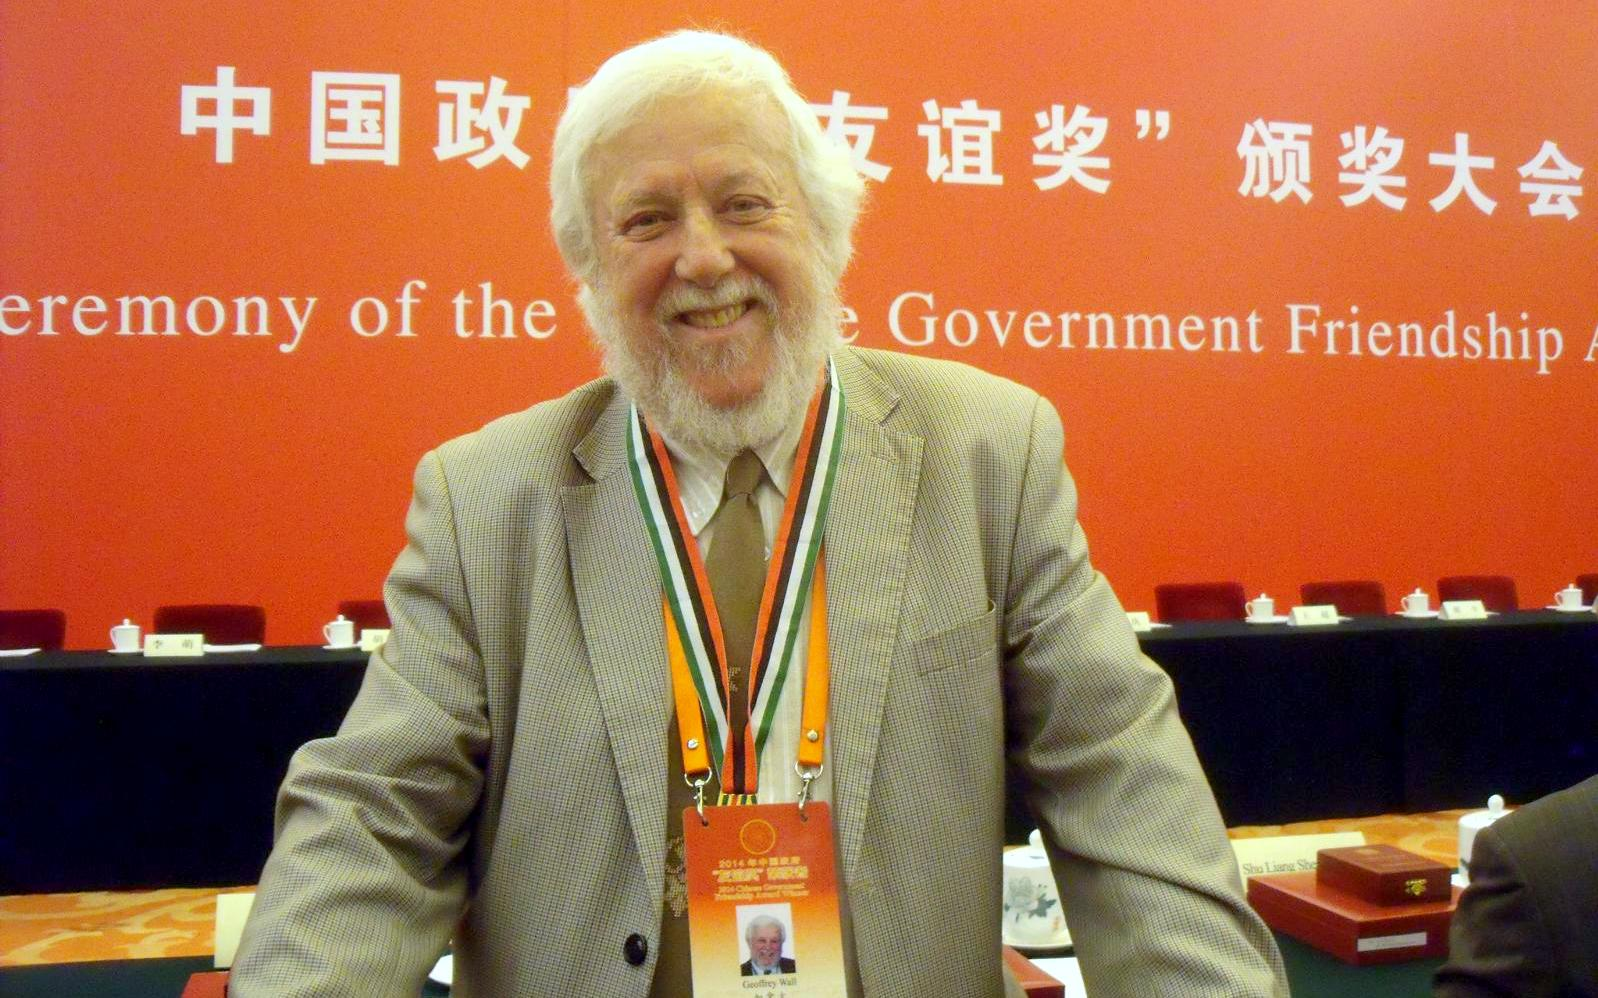 Professor Geoffrey Wall in China